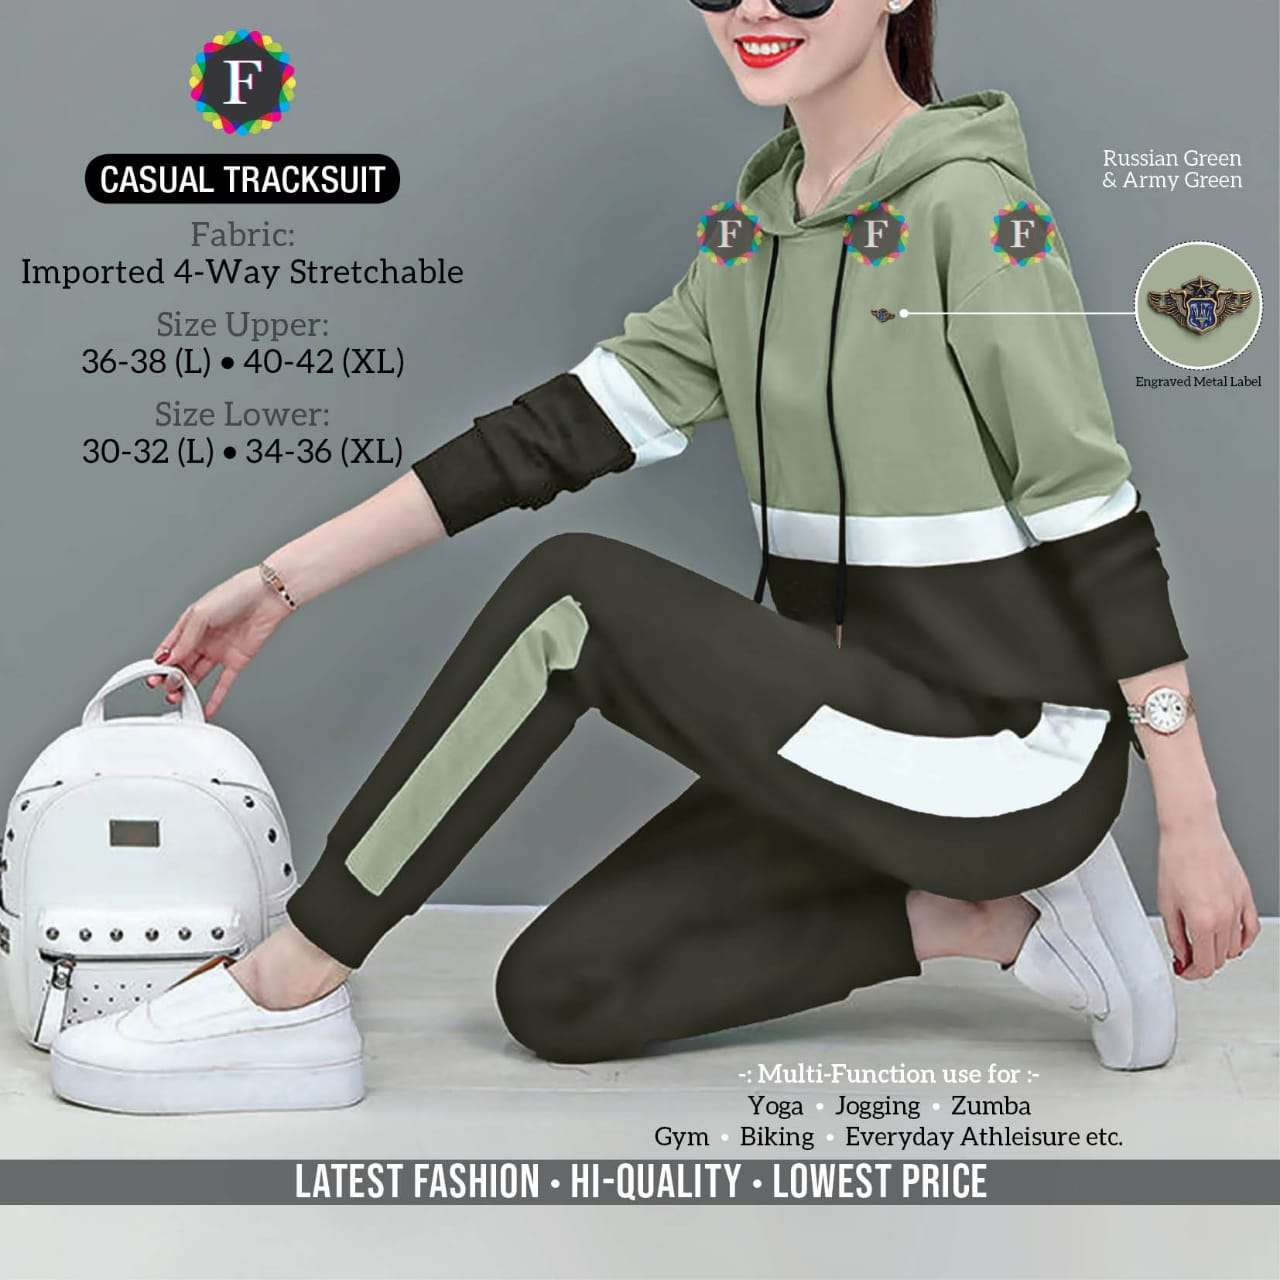 k4u present casual tracksuit imported 4 way stretchable ladies wear collection